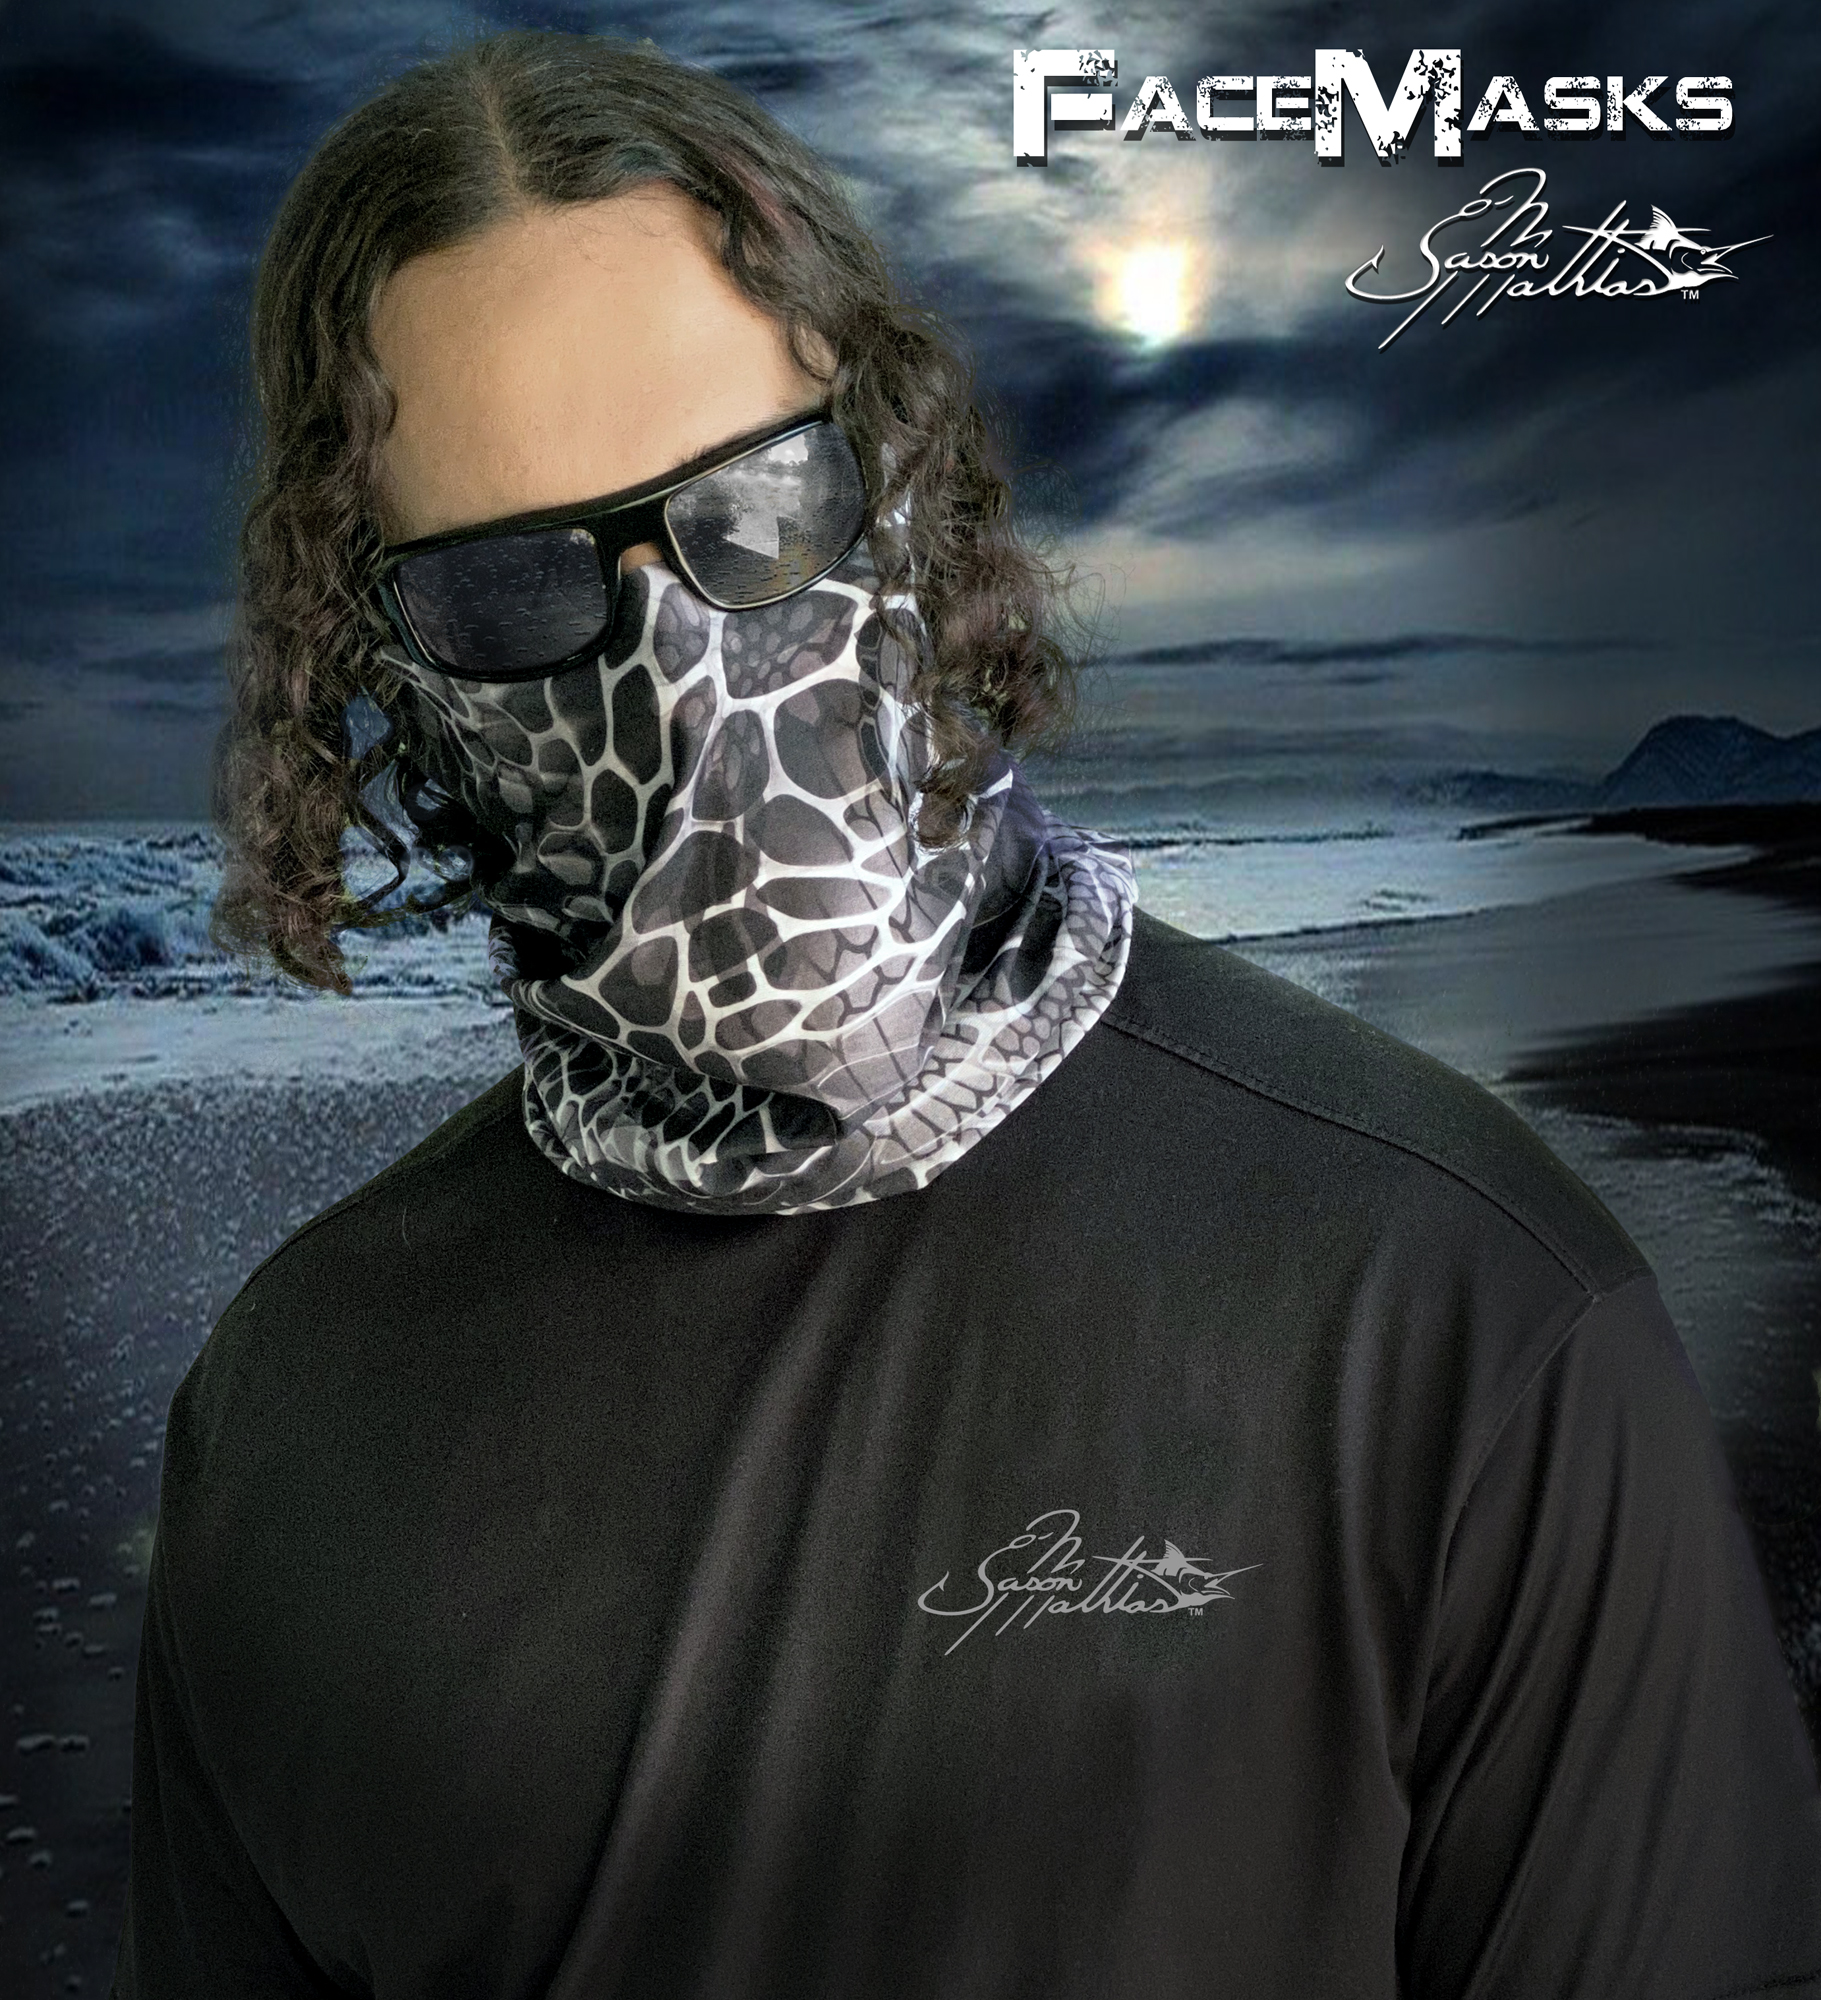 face-mask-face-shield-buff-protection-jason-mathias-art-desings.jpg